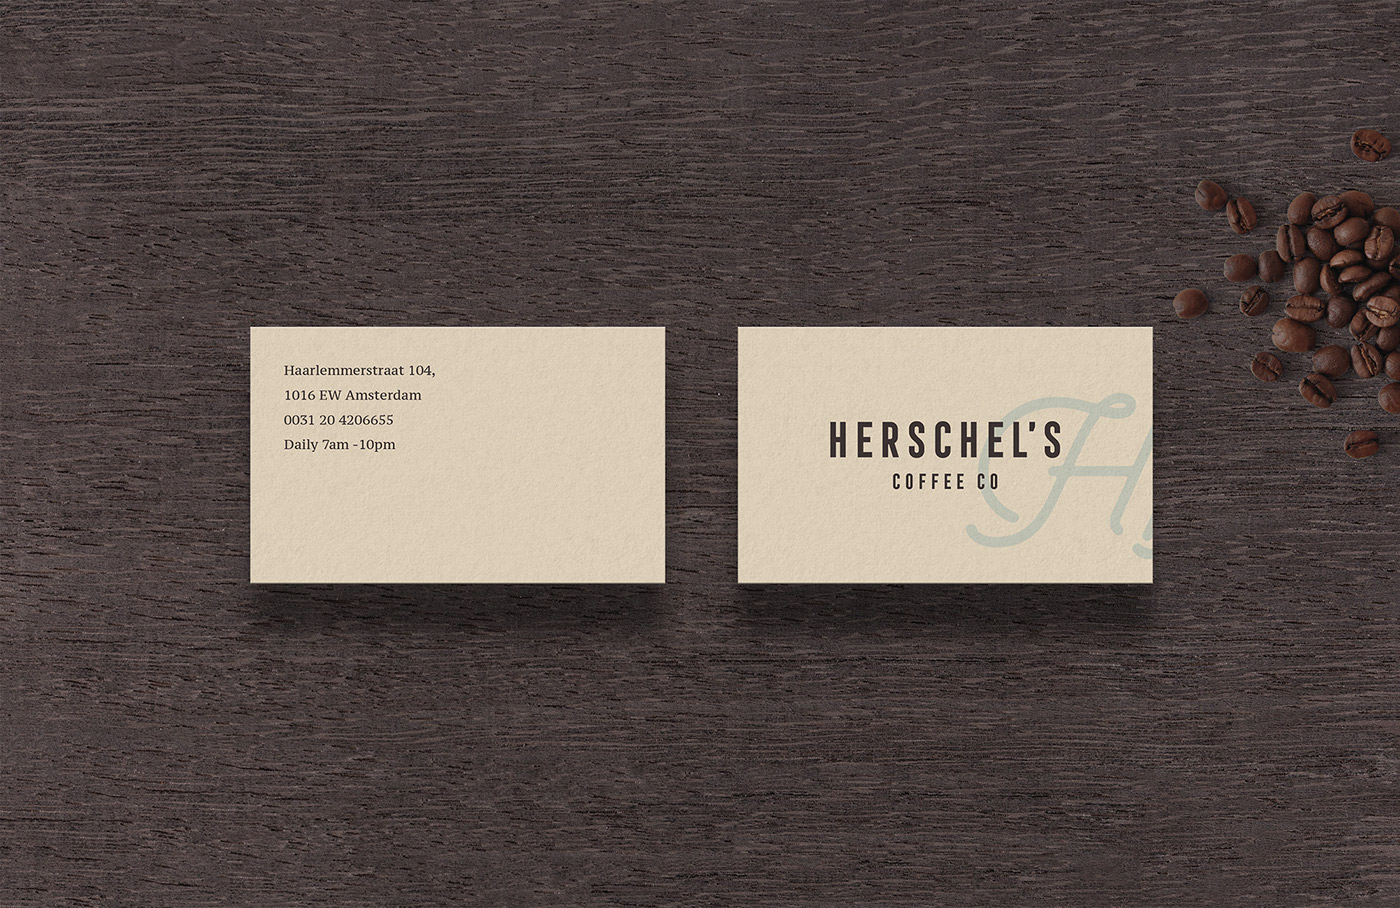 Herschels-Coffee-Co